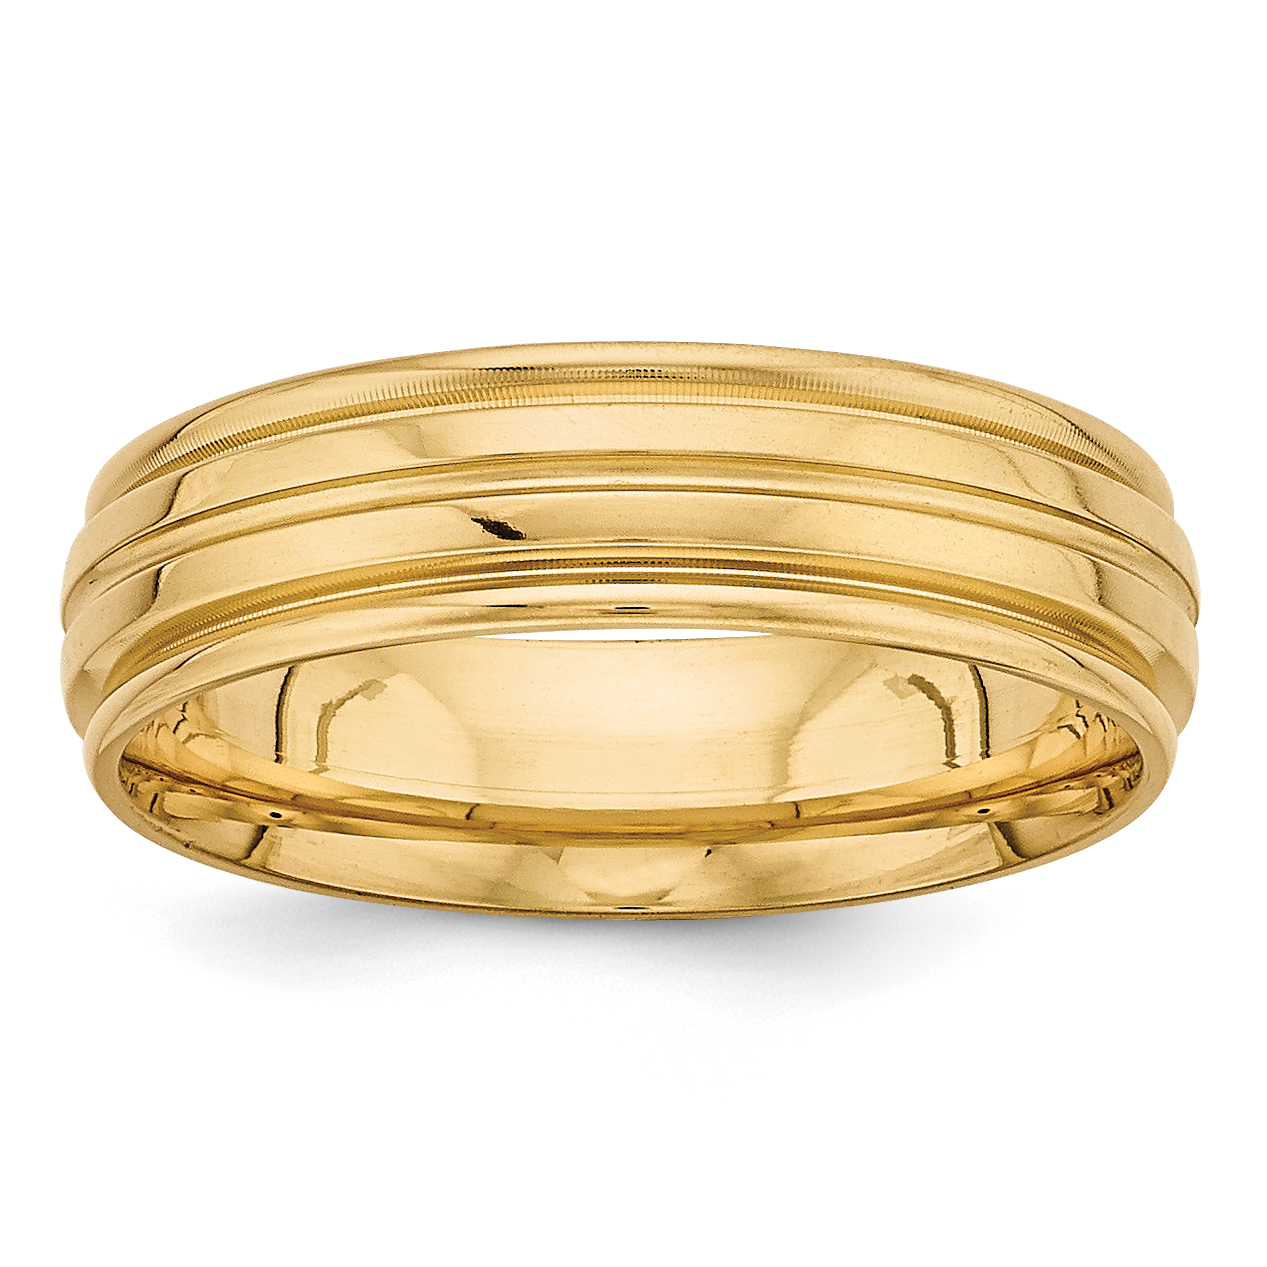 14K Yellow Gold Light Comfort Fit Fancy Band - image 3 of 3